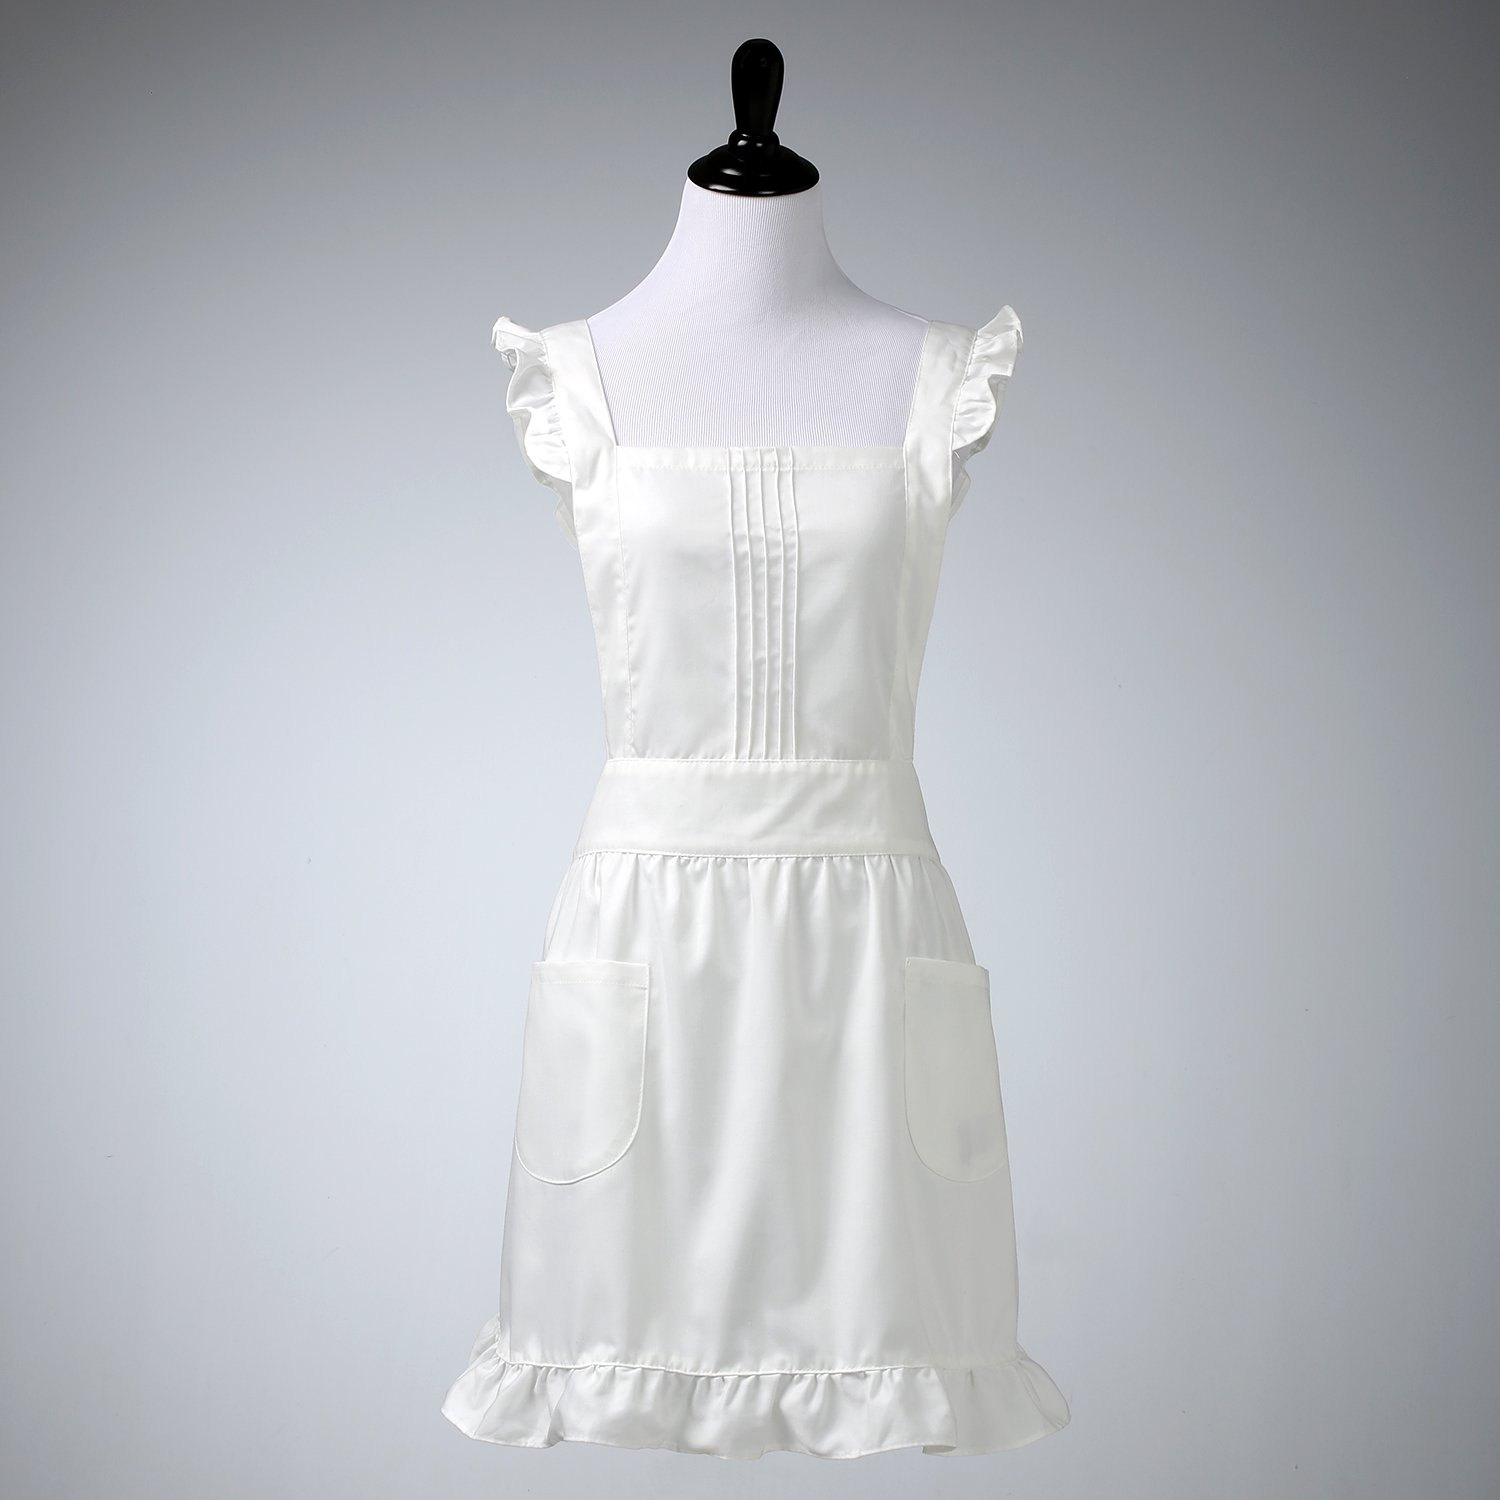 White ruffle apron amazon - Amazon Com Plum Hill Womens Retro White Victorian Apron With Bib And Pockets Pinafore For Cooking Or Costume Medium Home Kitchen